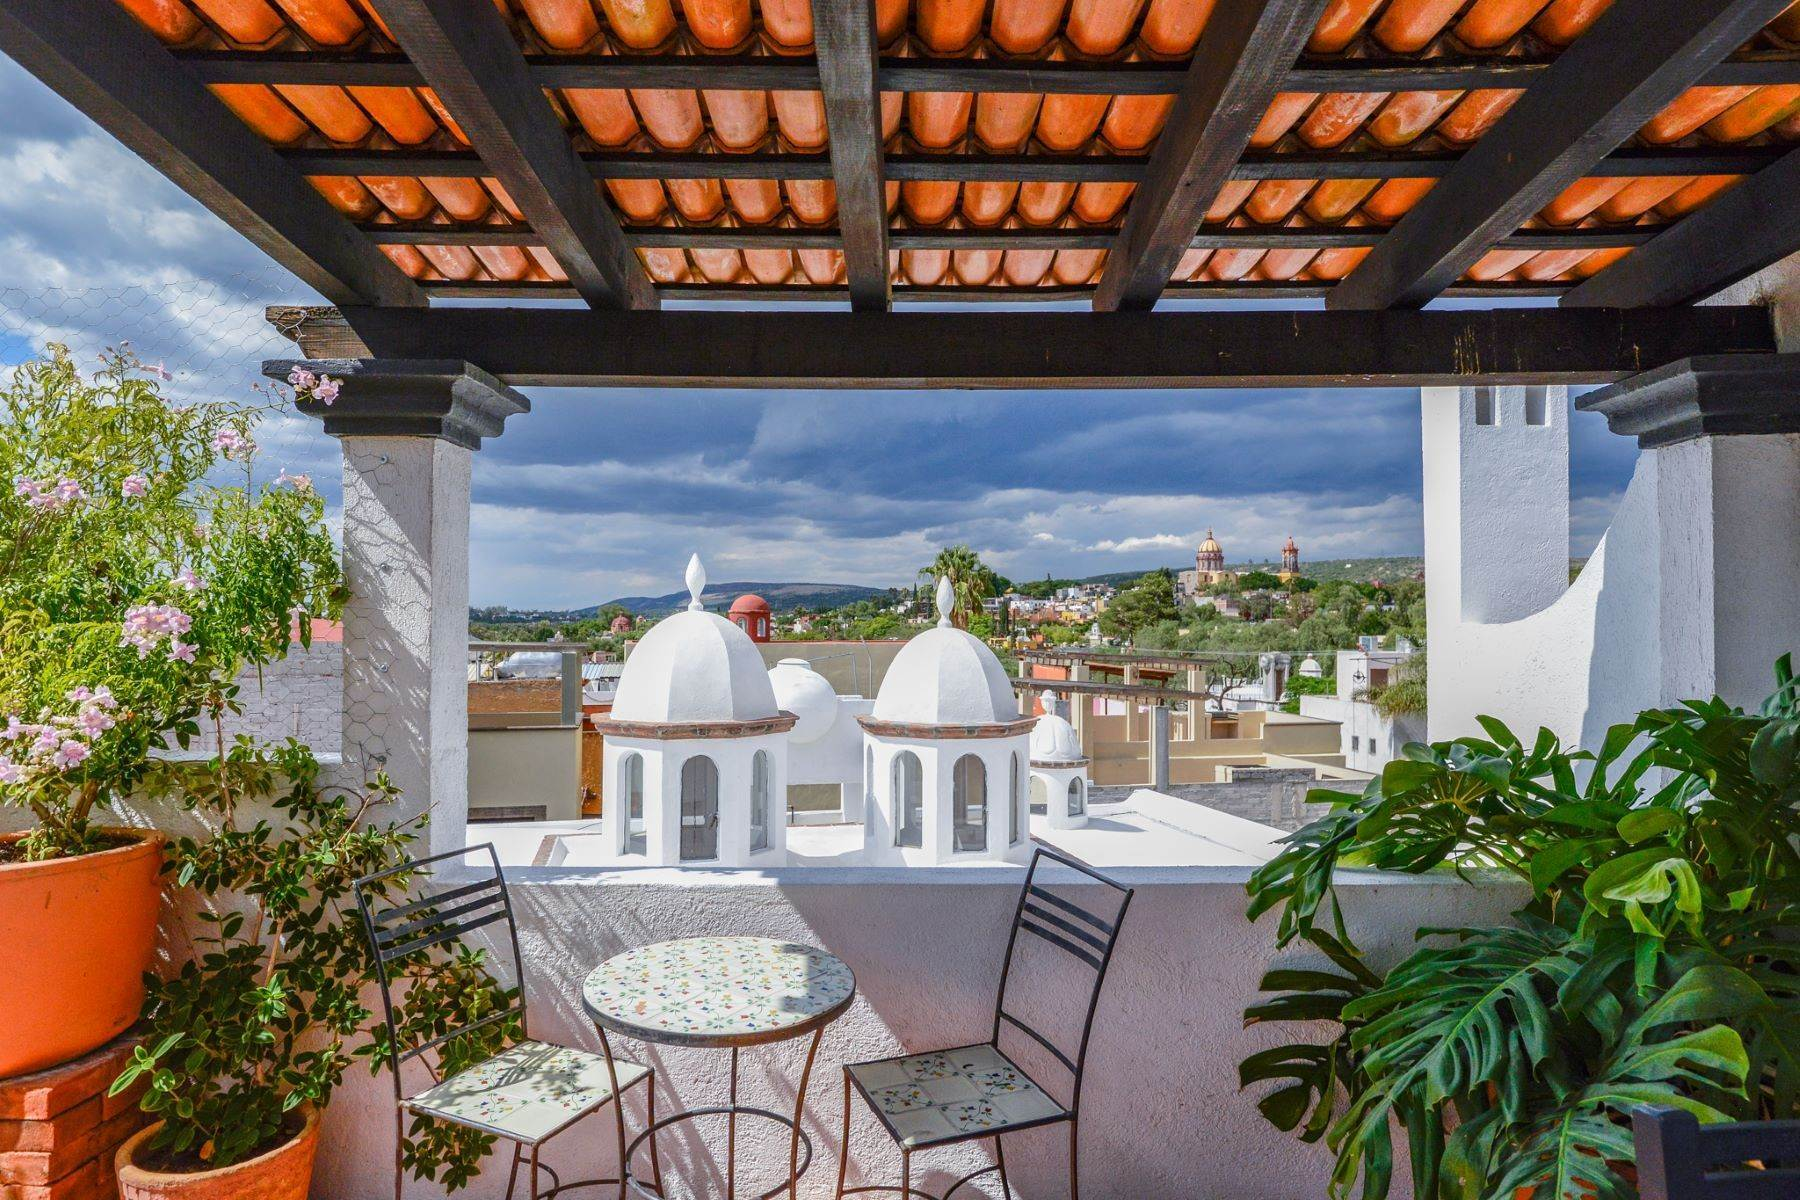 Single Family Homes for Sale at Casa Norte 20 de Enero Norte San Miguel De Allende, Guanajuato 37750 Mexico